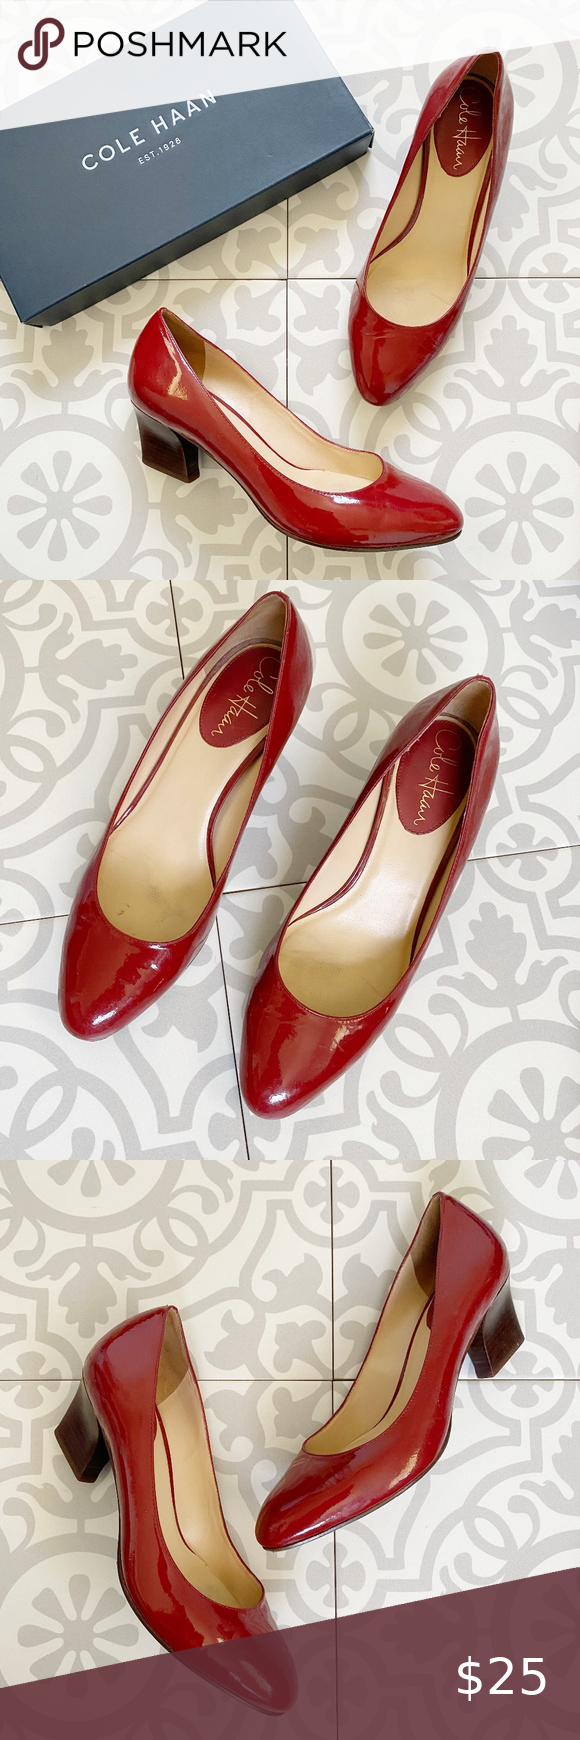 Cole Haan Patent Leather Red Kitten Heels 6 In 2020 Red Kitten Heels Heels Shoes Women Heels